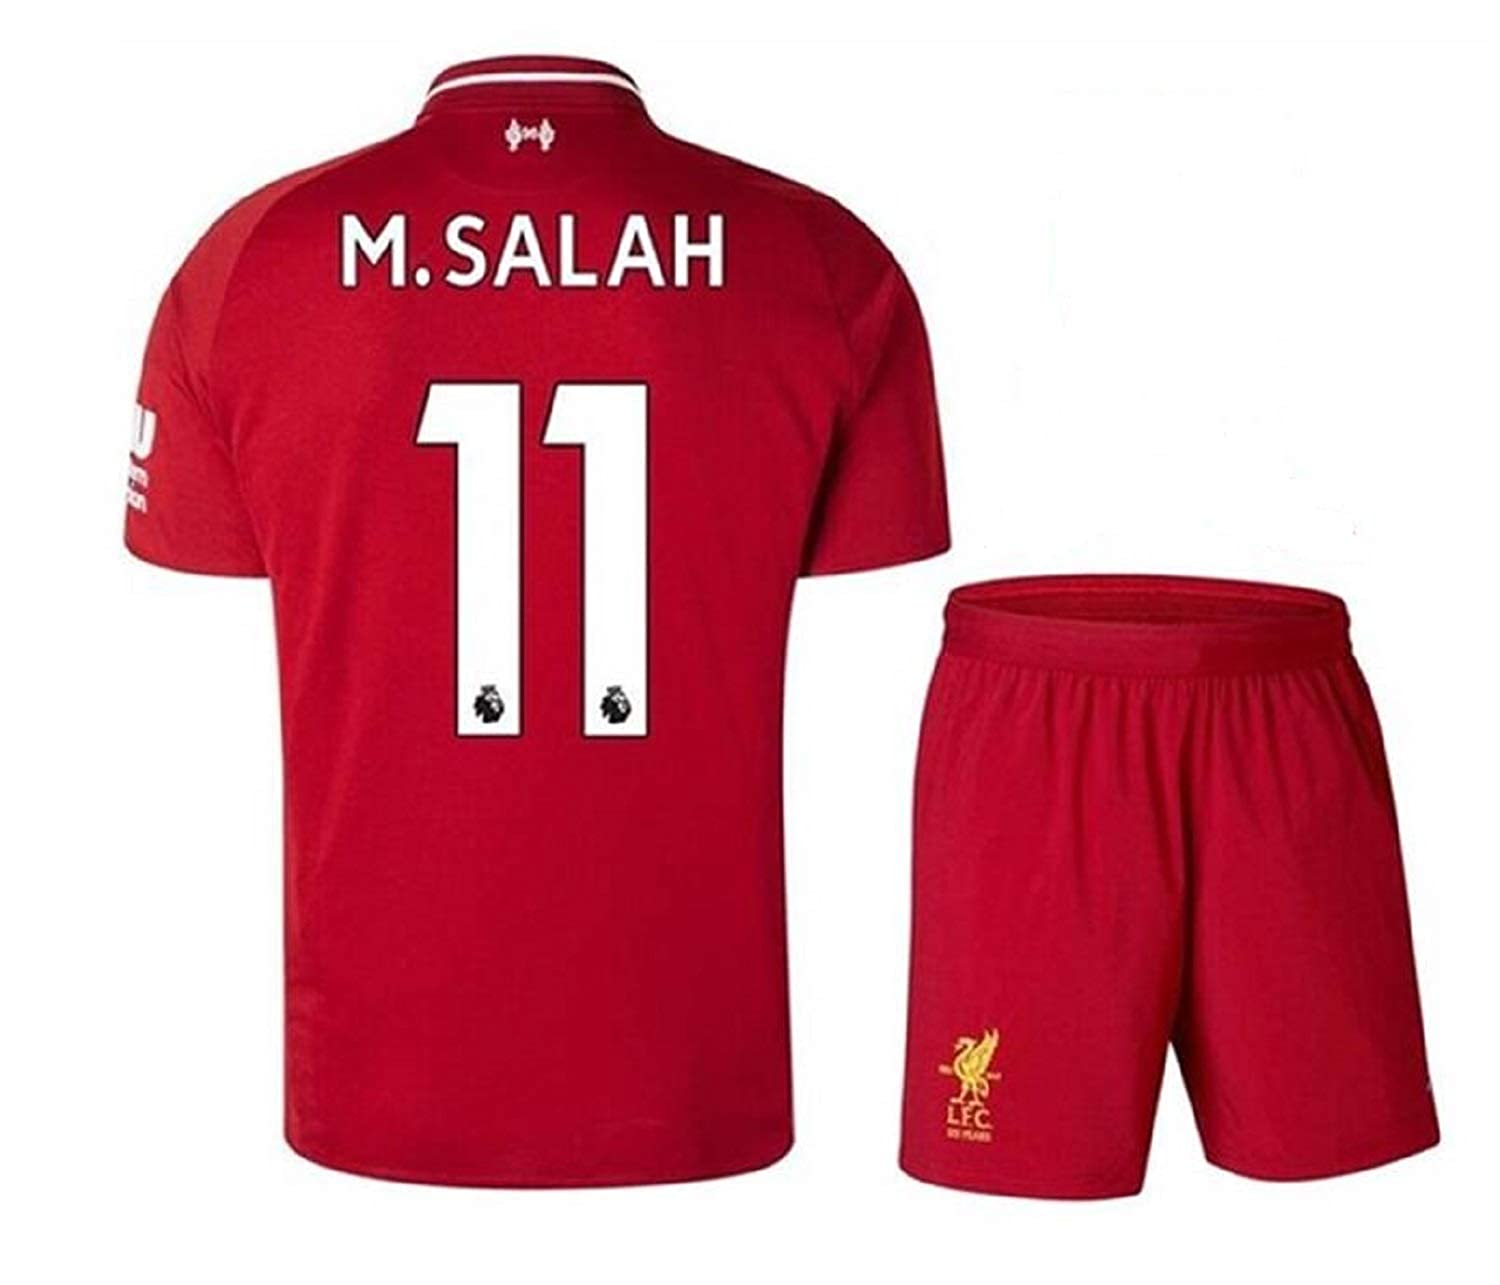 huge selection of 11c33 e26a5 Liverpool Home Jersey #11 M Salah 2018-2019 Kid's Soccer Jersey Red(S-XL)